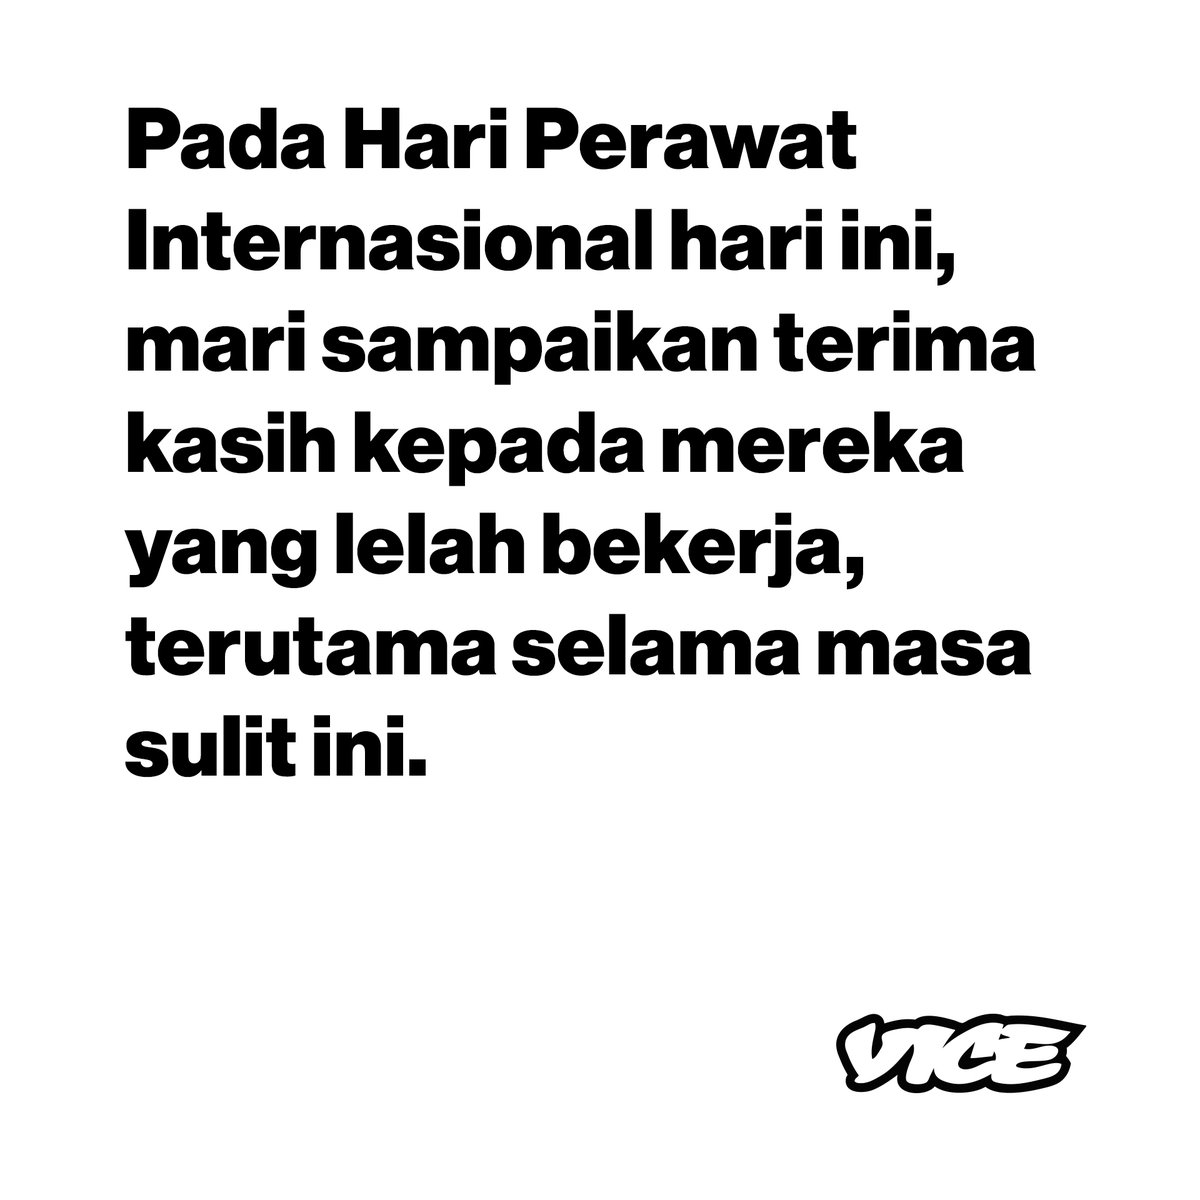 VICE Indonesia VICE ID